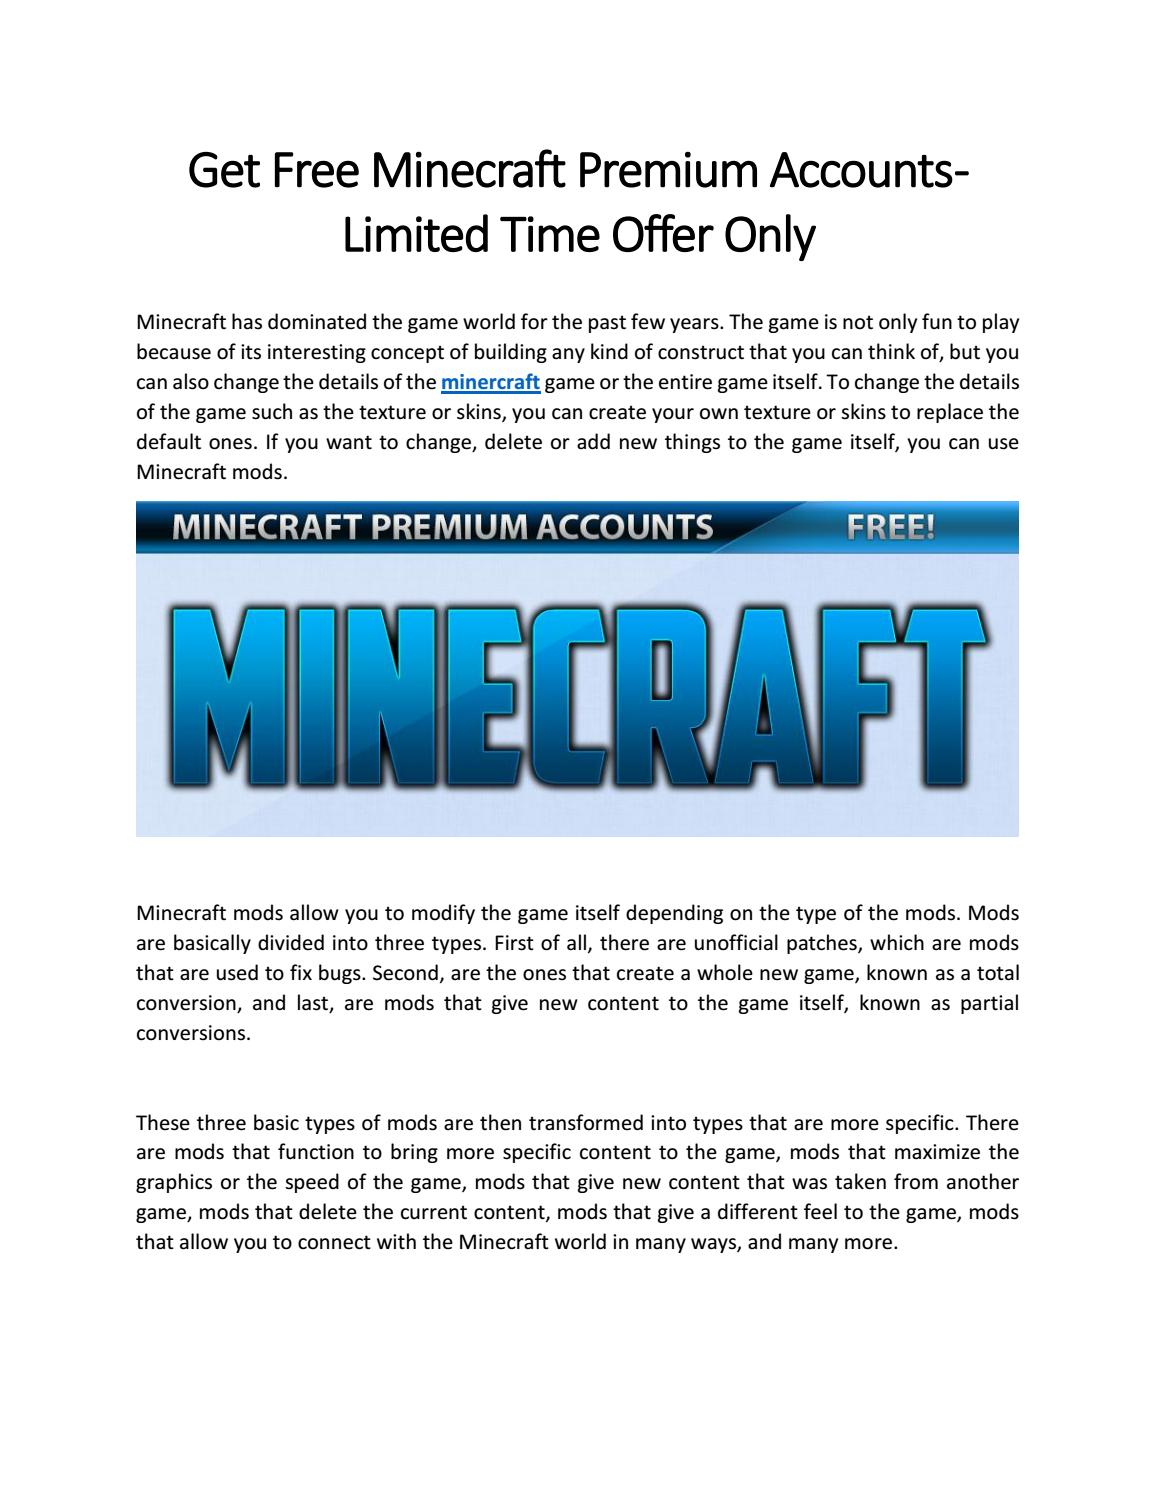 Get Free Minecraft Premium Accounts - Limited Time Offer